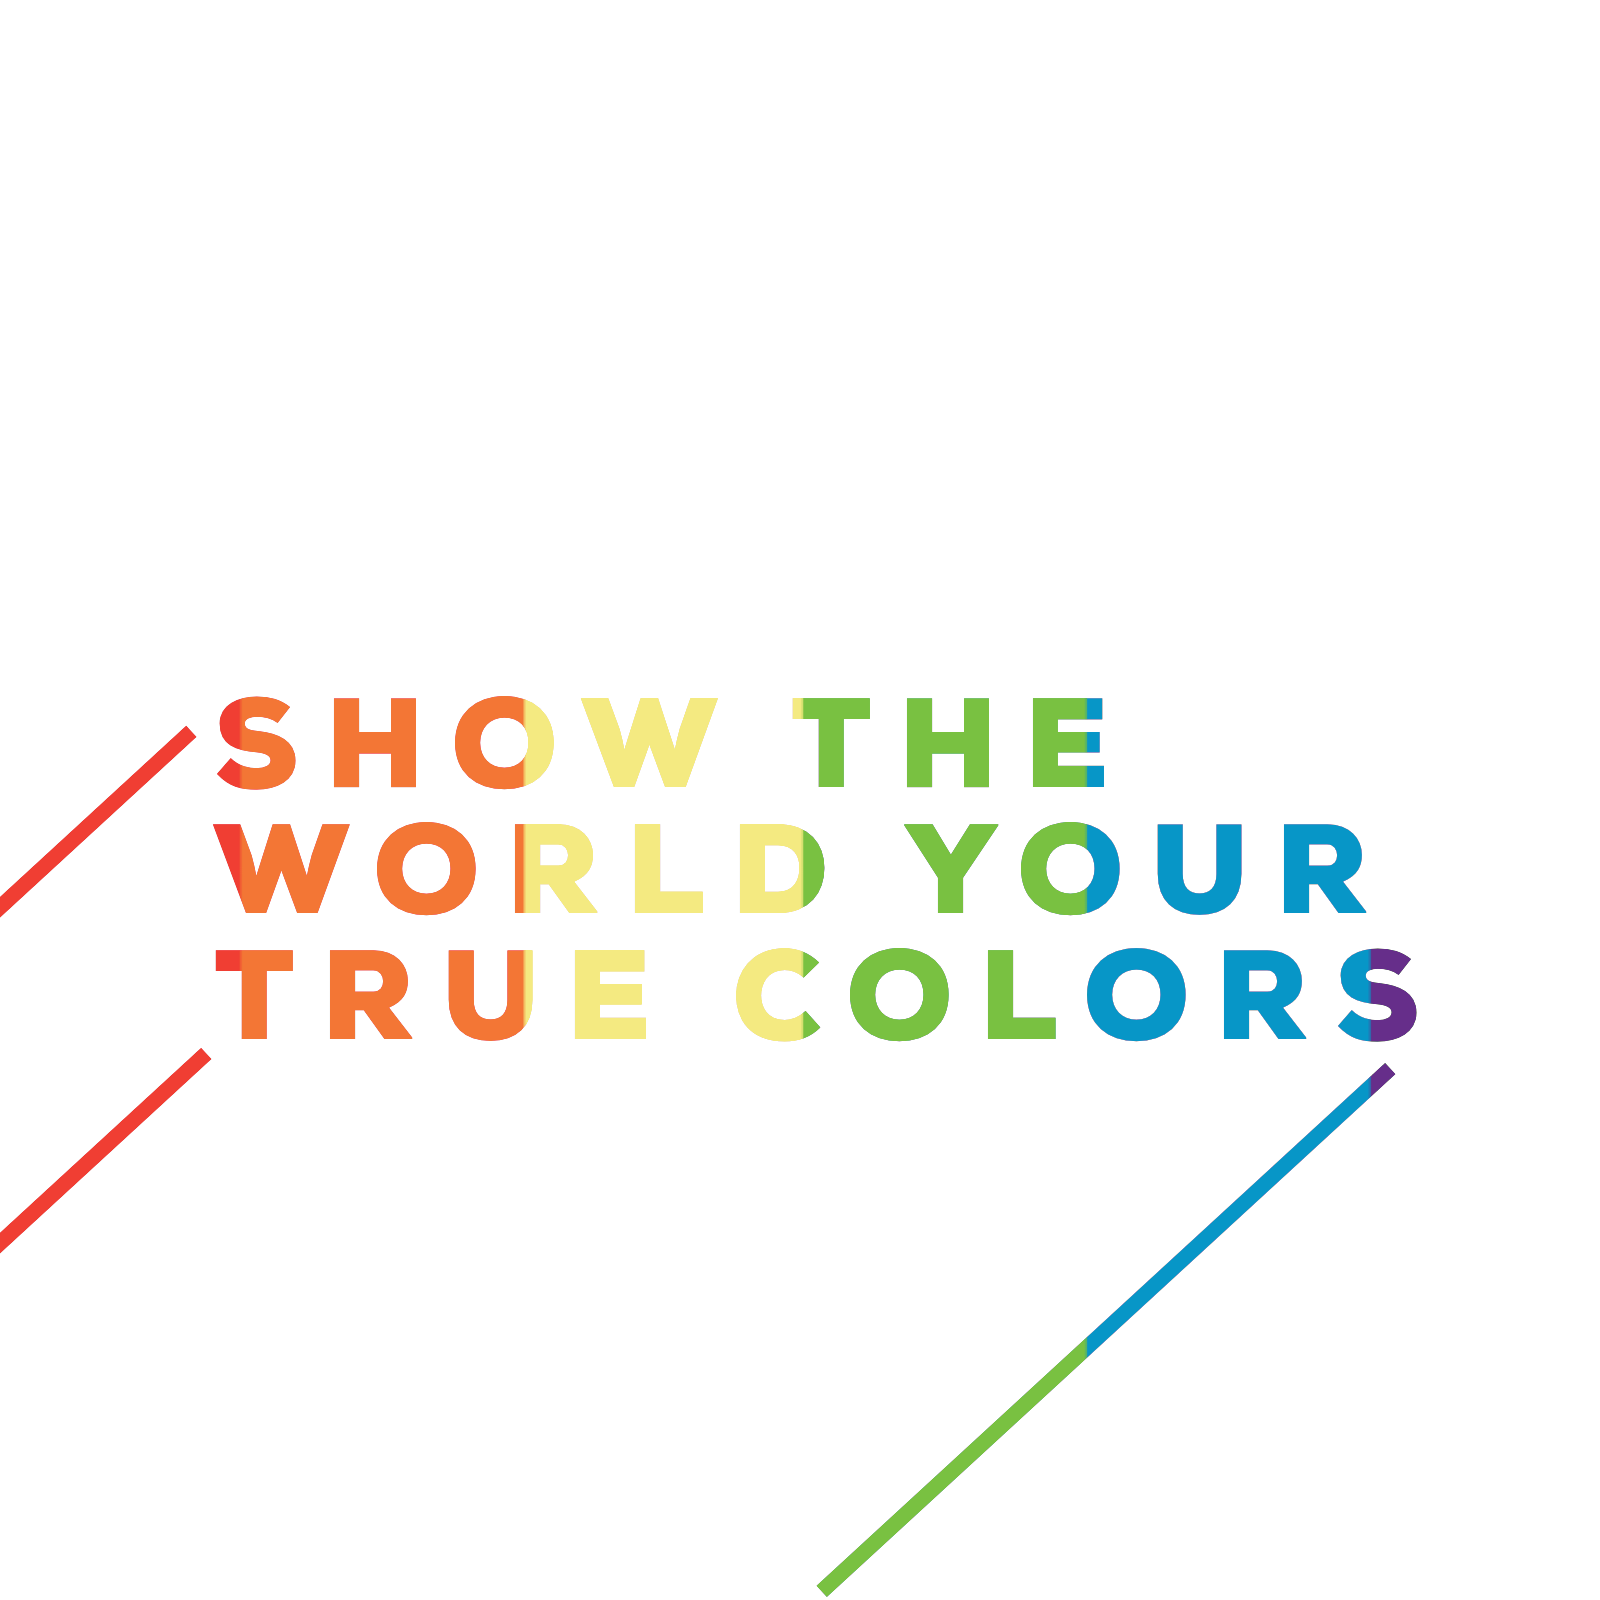 Free Pride Lgbtq Social Content Pride Quotes Palm Of Your Hand Pride